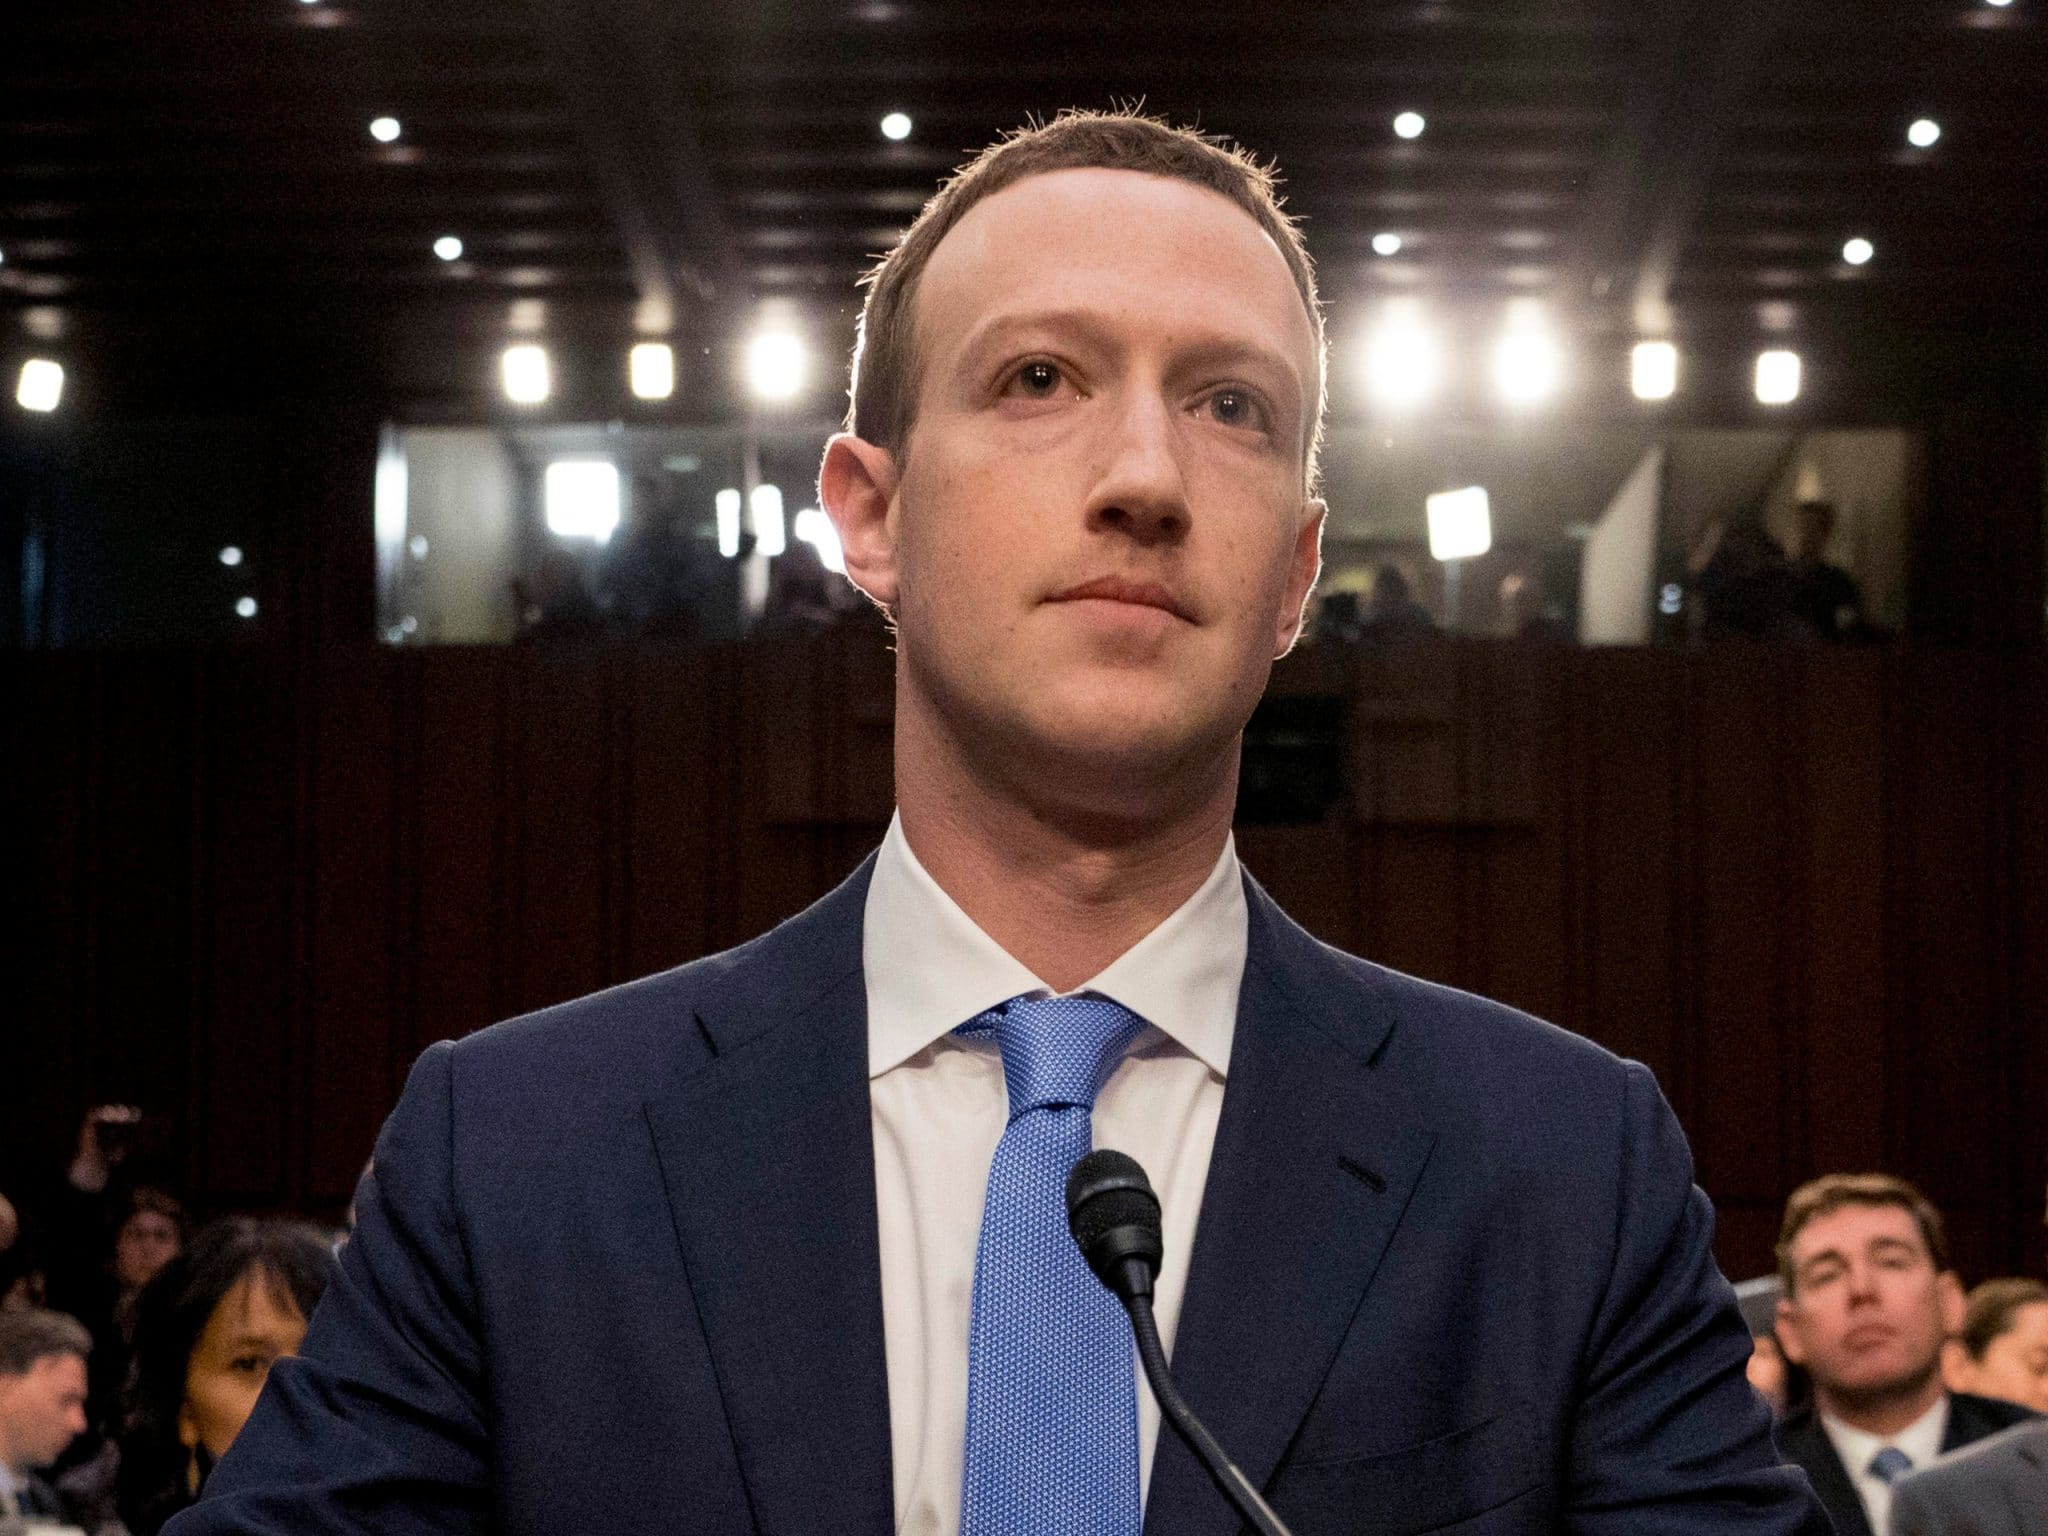 Facebook just got clobbered with a record $5 billion penalty over the Cambridge Analytica data breach